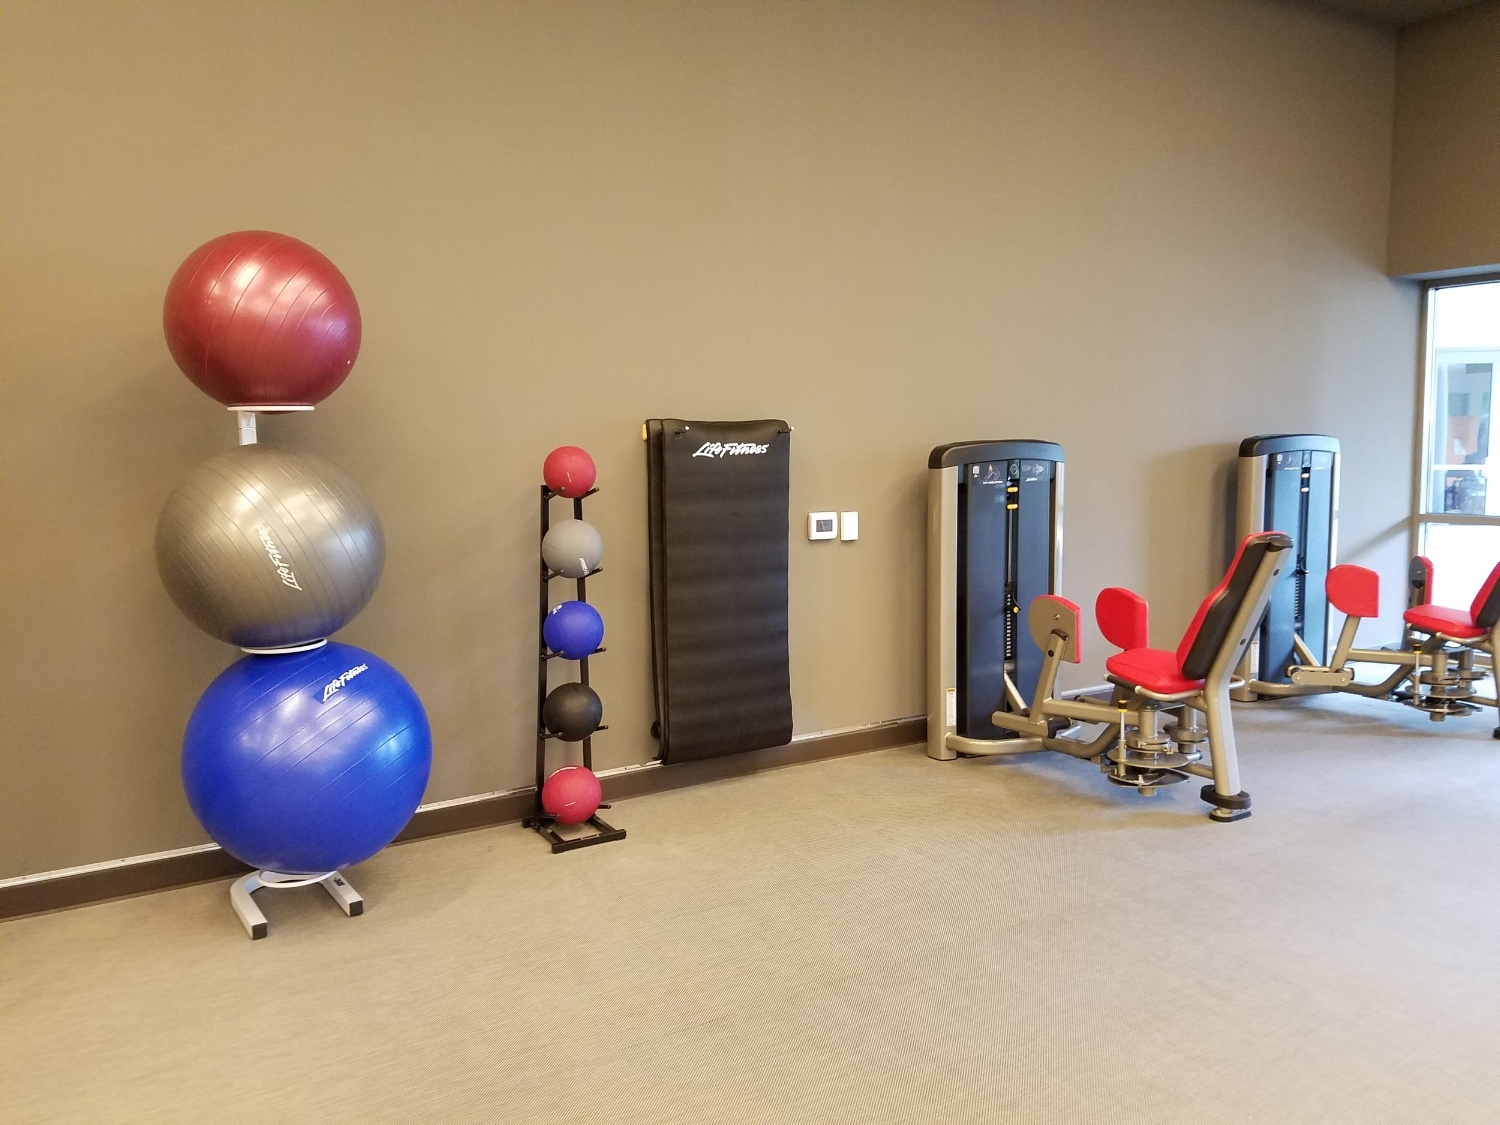 Workout Balls Located in Kalina Health and Fitness Room